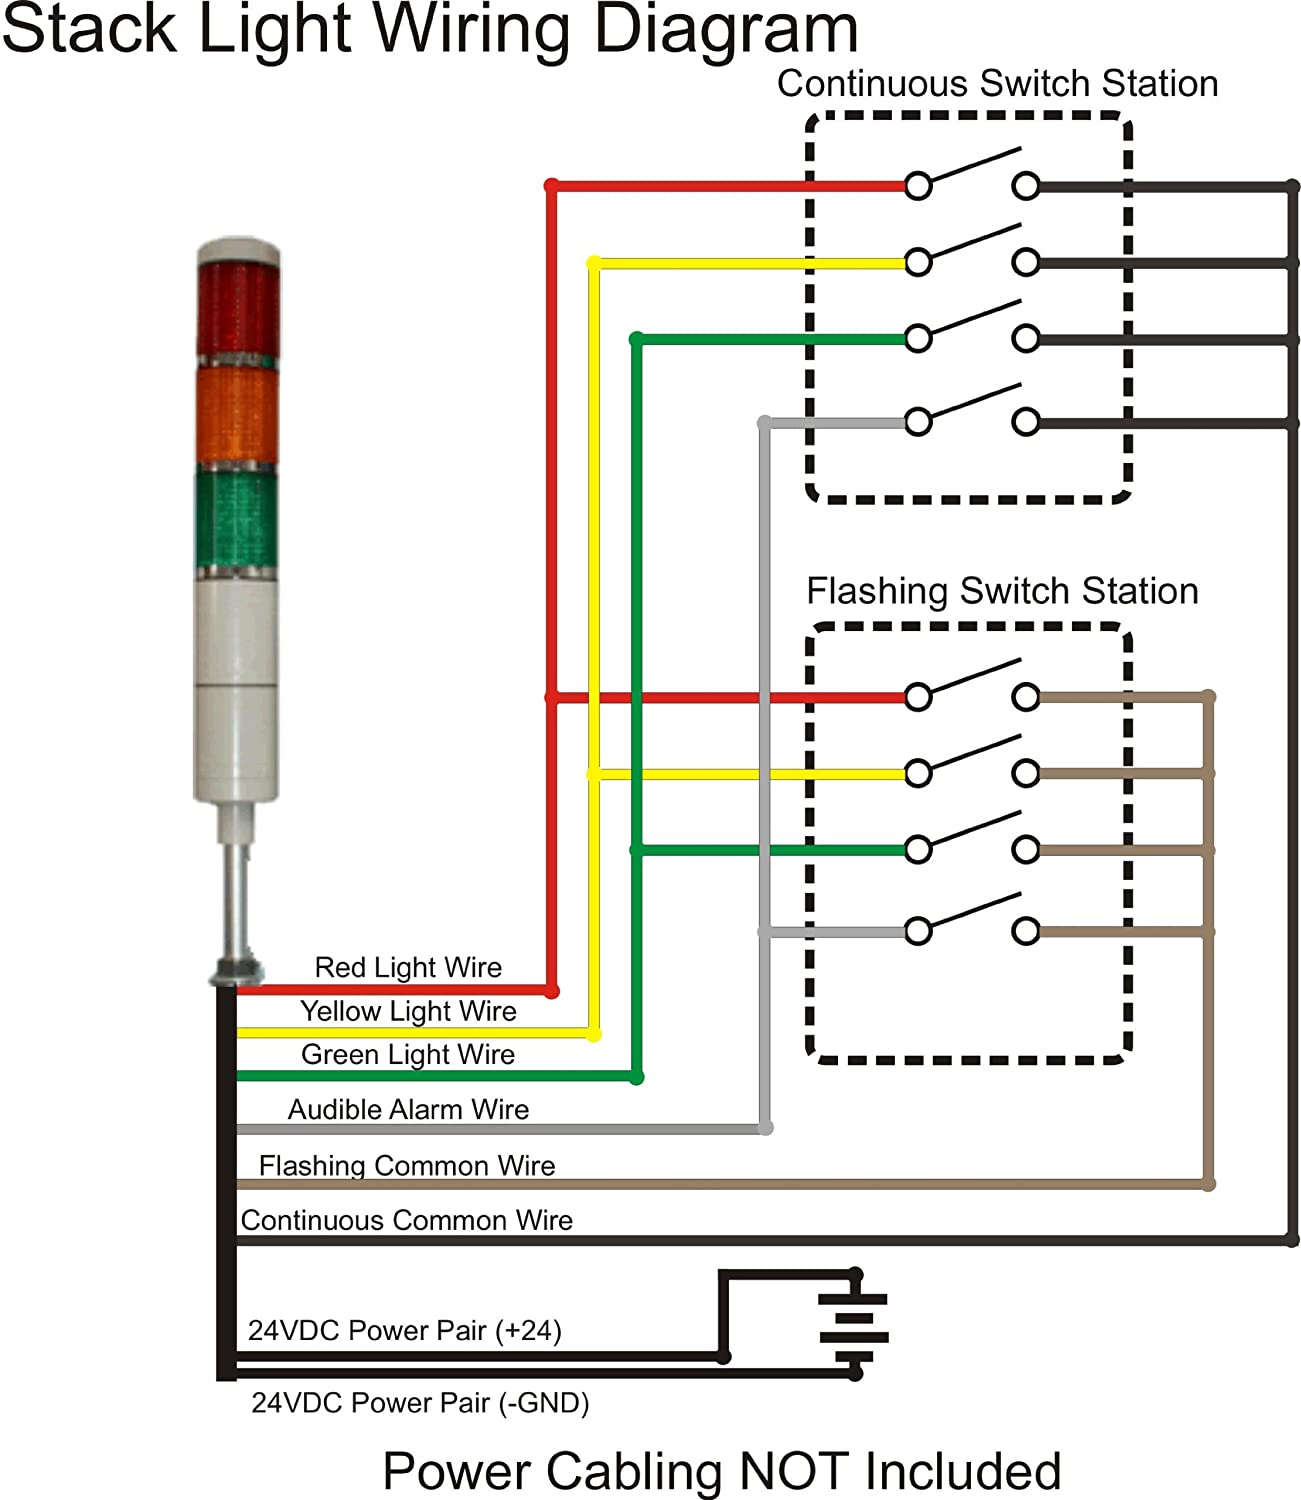 stack light wiring diagram   26 wiring diagram images